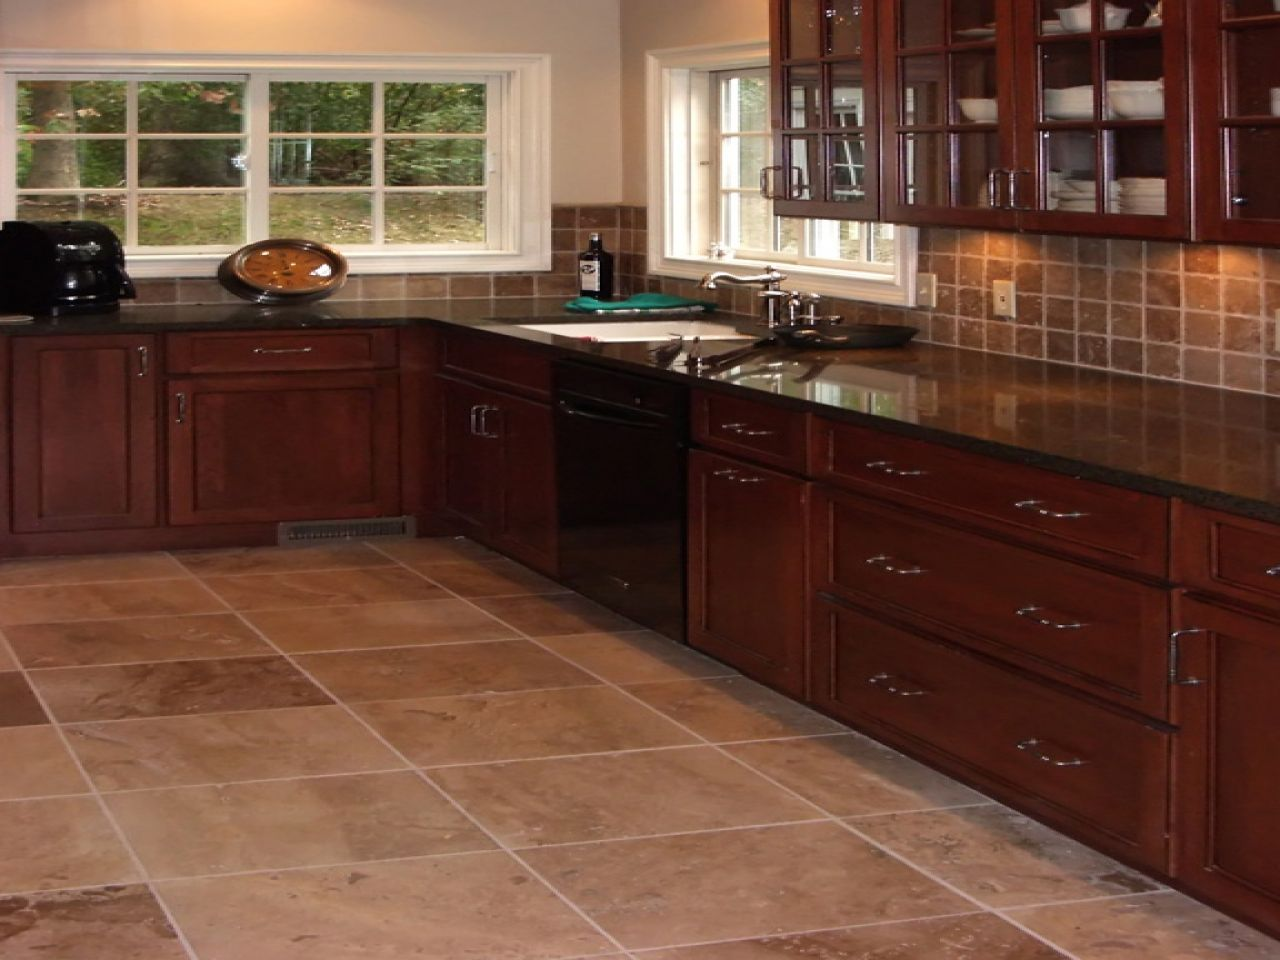 Cherry Cabinets With Stone Linoleum Flooring Cherry Kitchen Cabinets Kitchens With Grey Cherry Cabinets Kitchen Kitchen Floor Tile Travertine Kitchen Floors